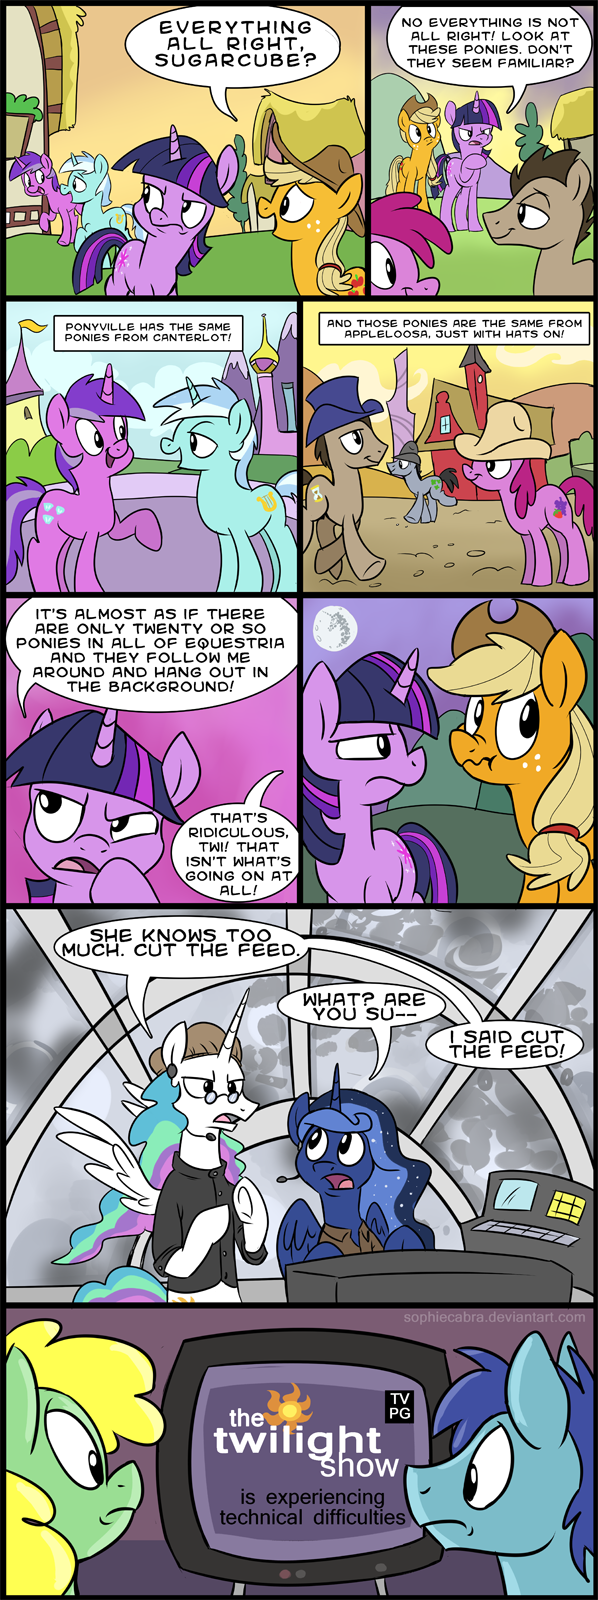 Comic: The Twilight Show by sophiecabra